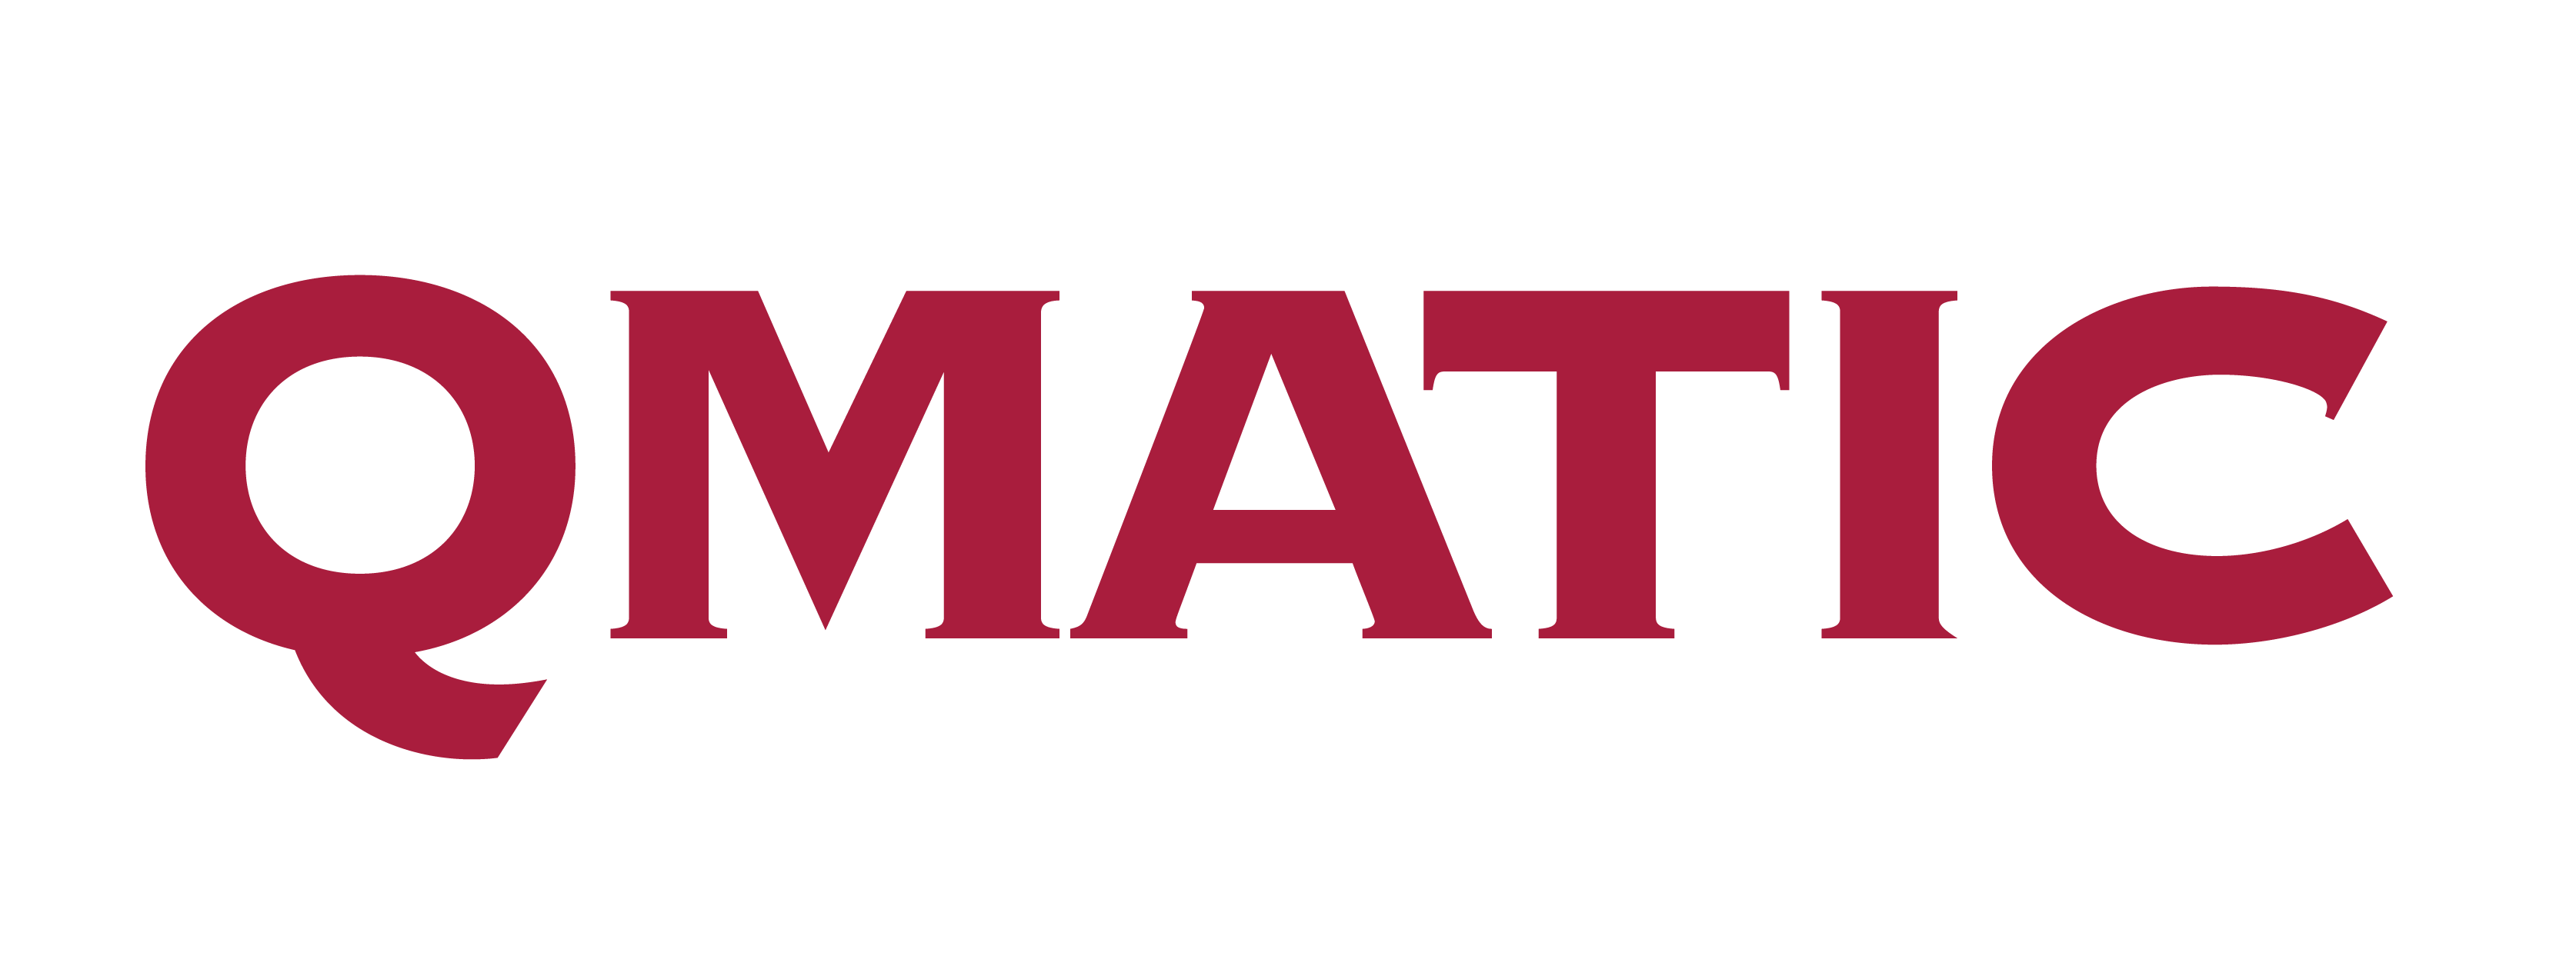 QMatic-RED.png